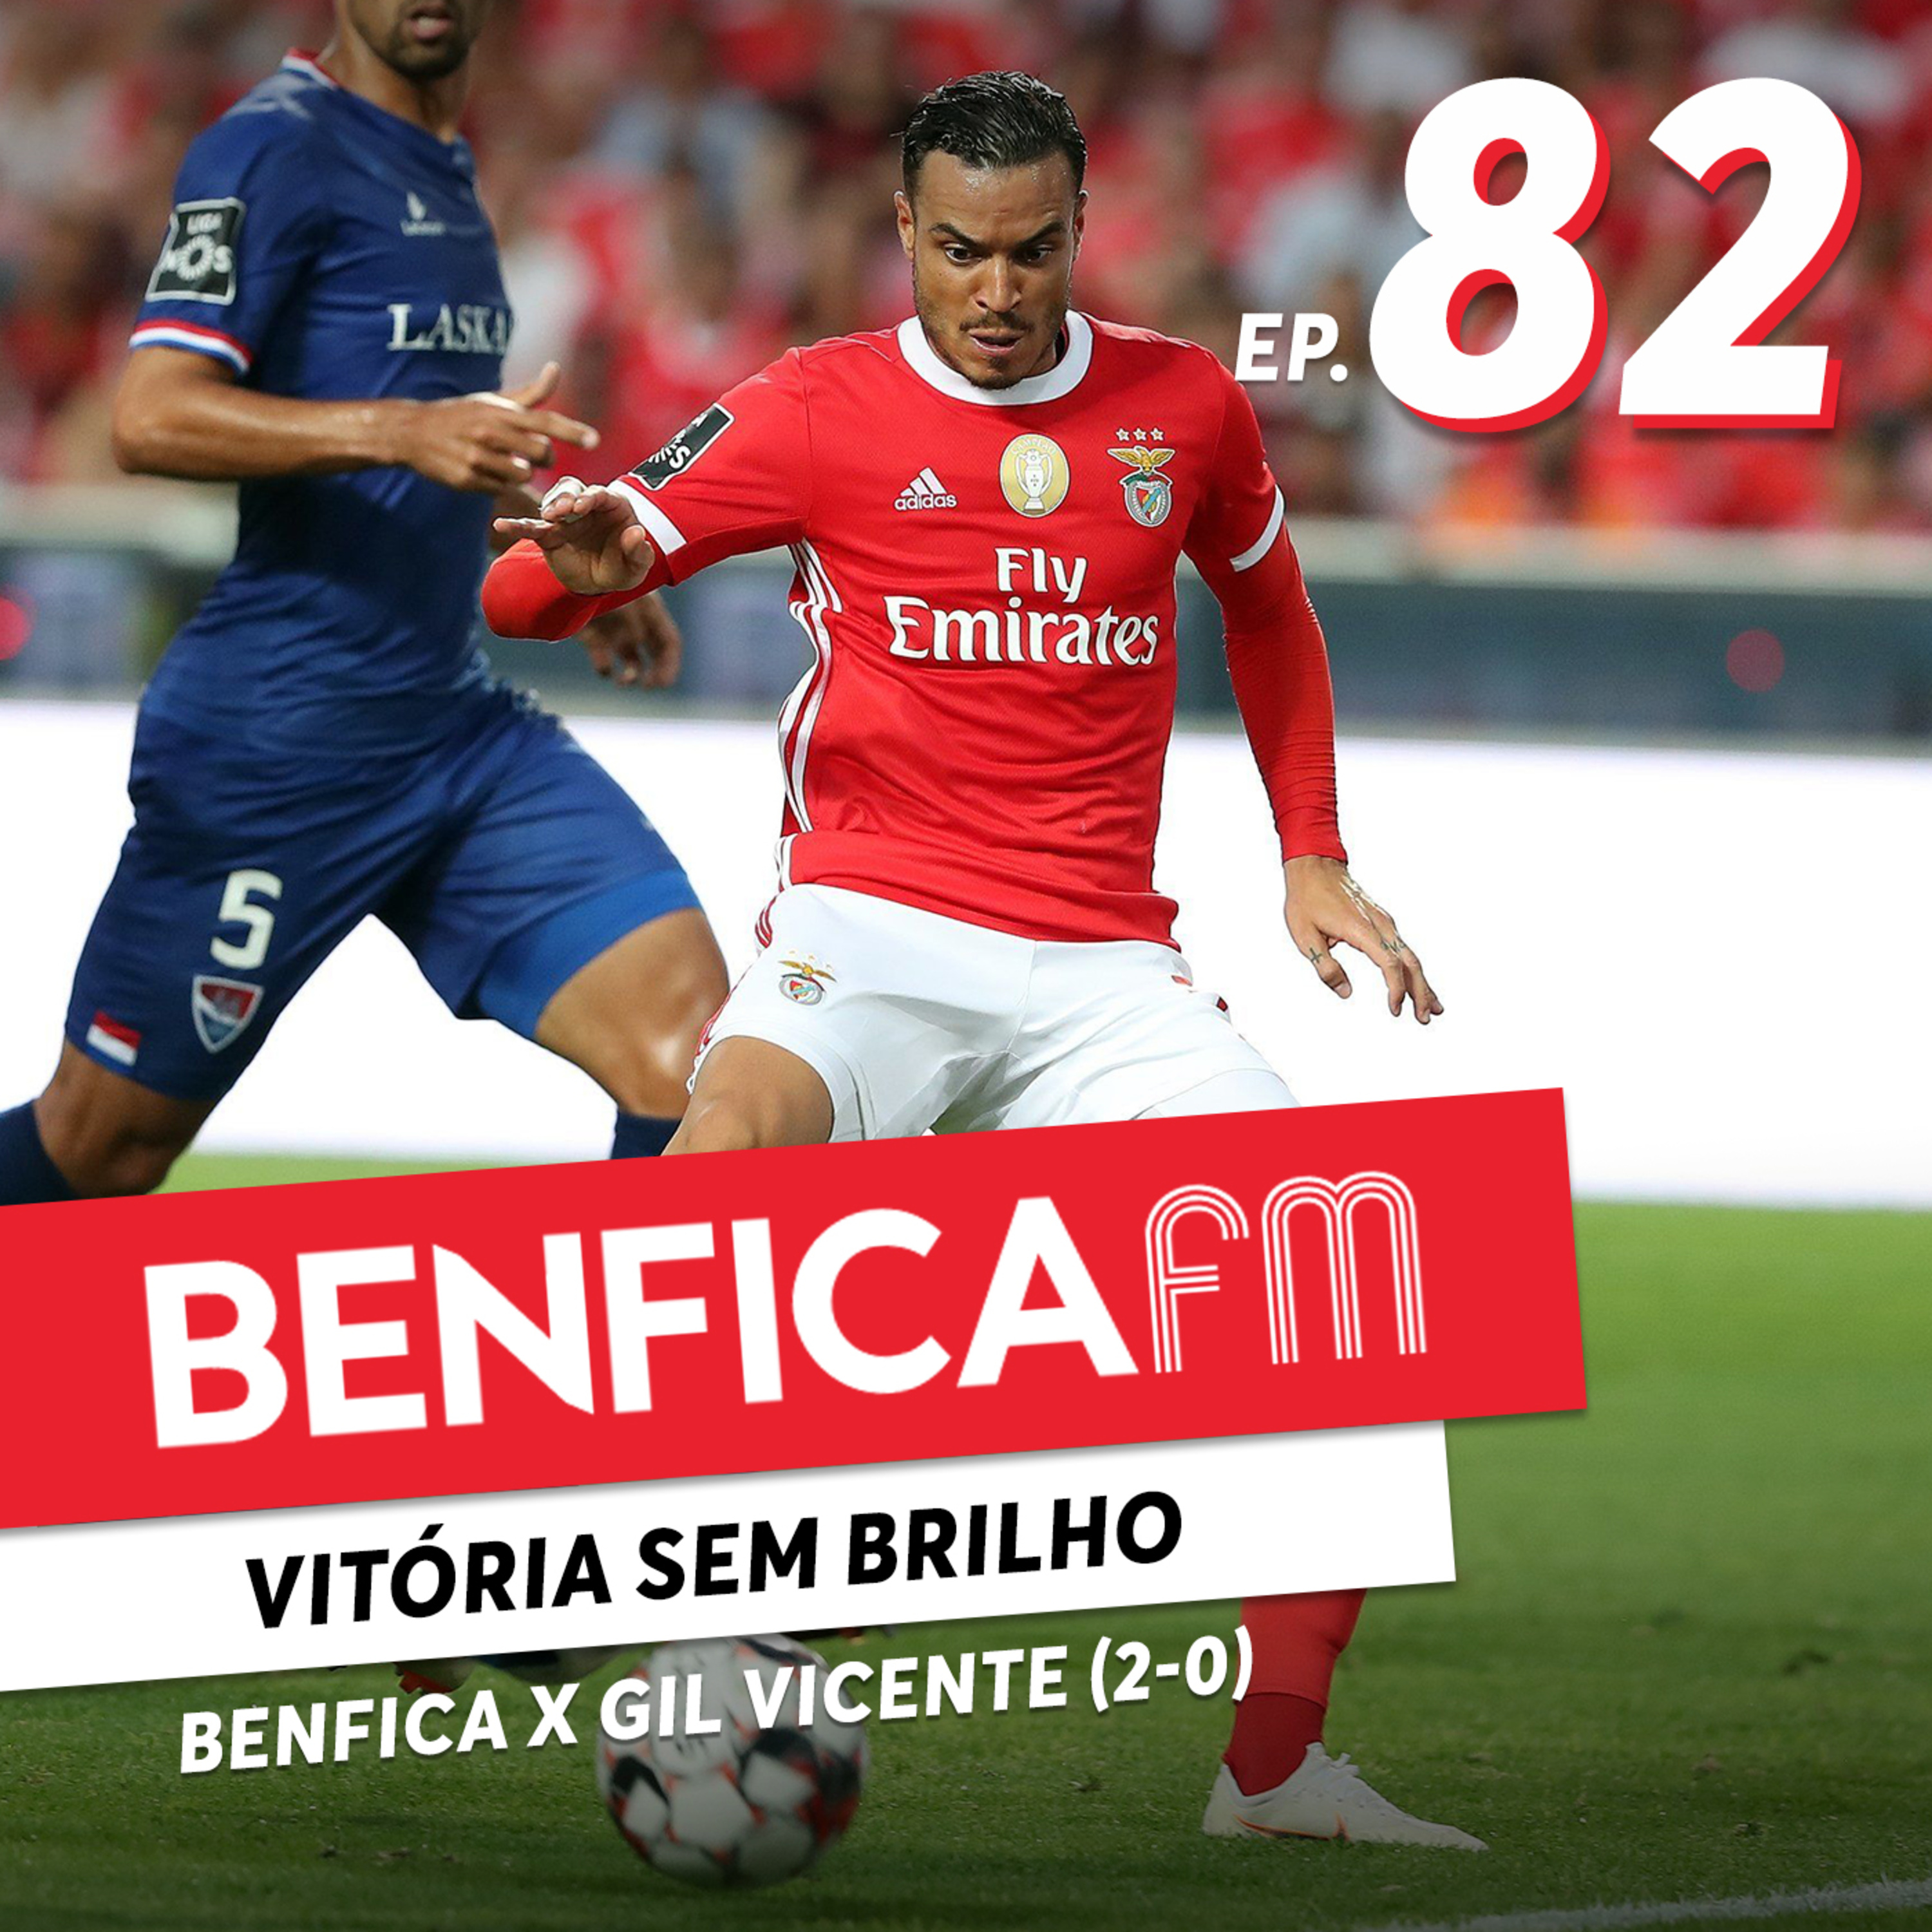 #82 - Benfica FM | Benfica x Gil Vicente (2-0)